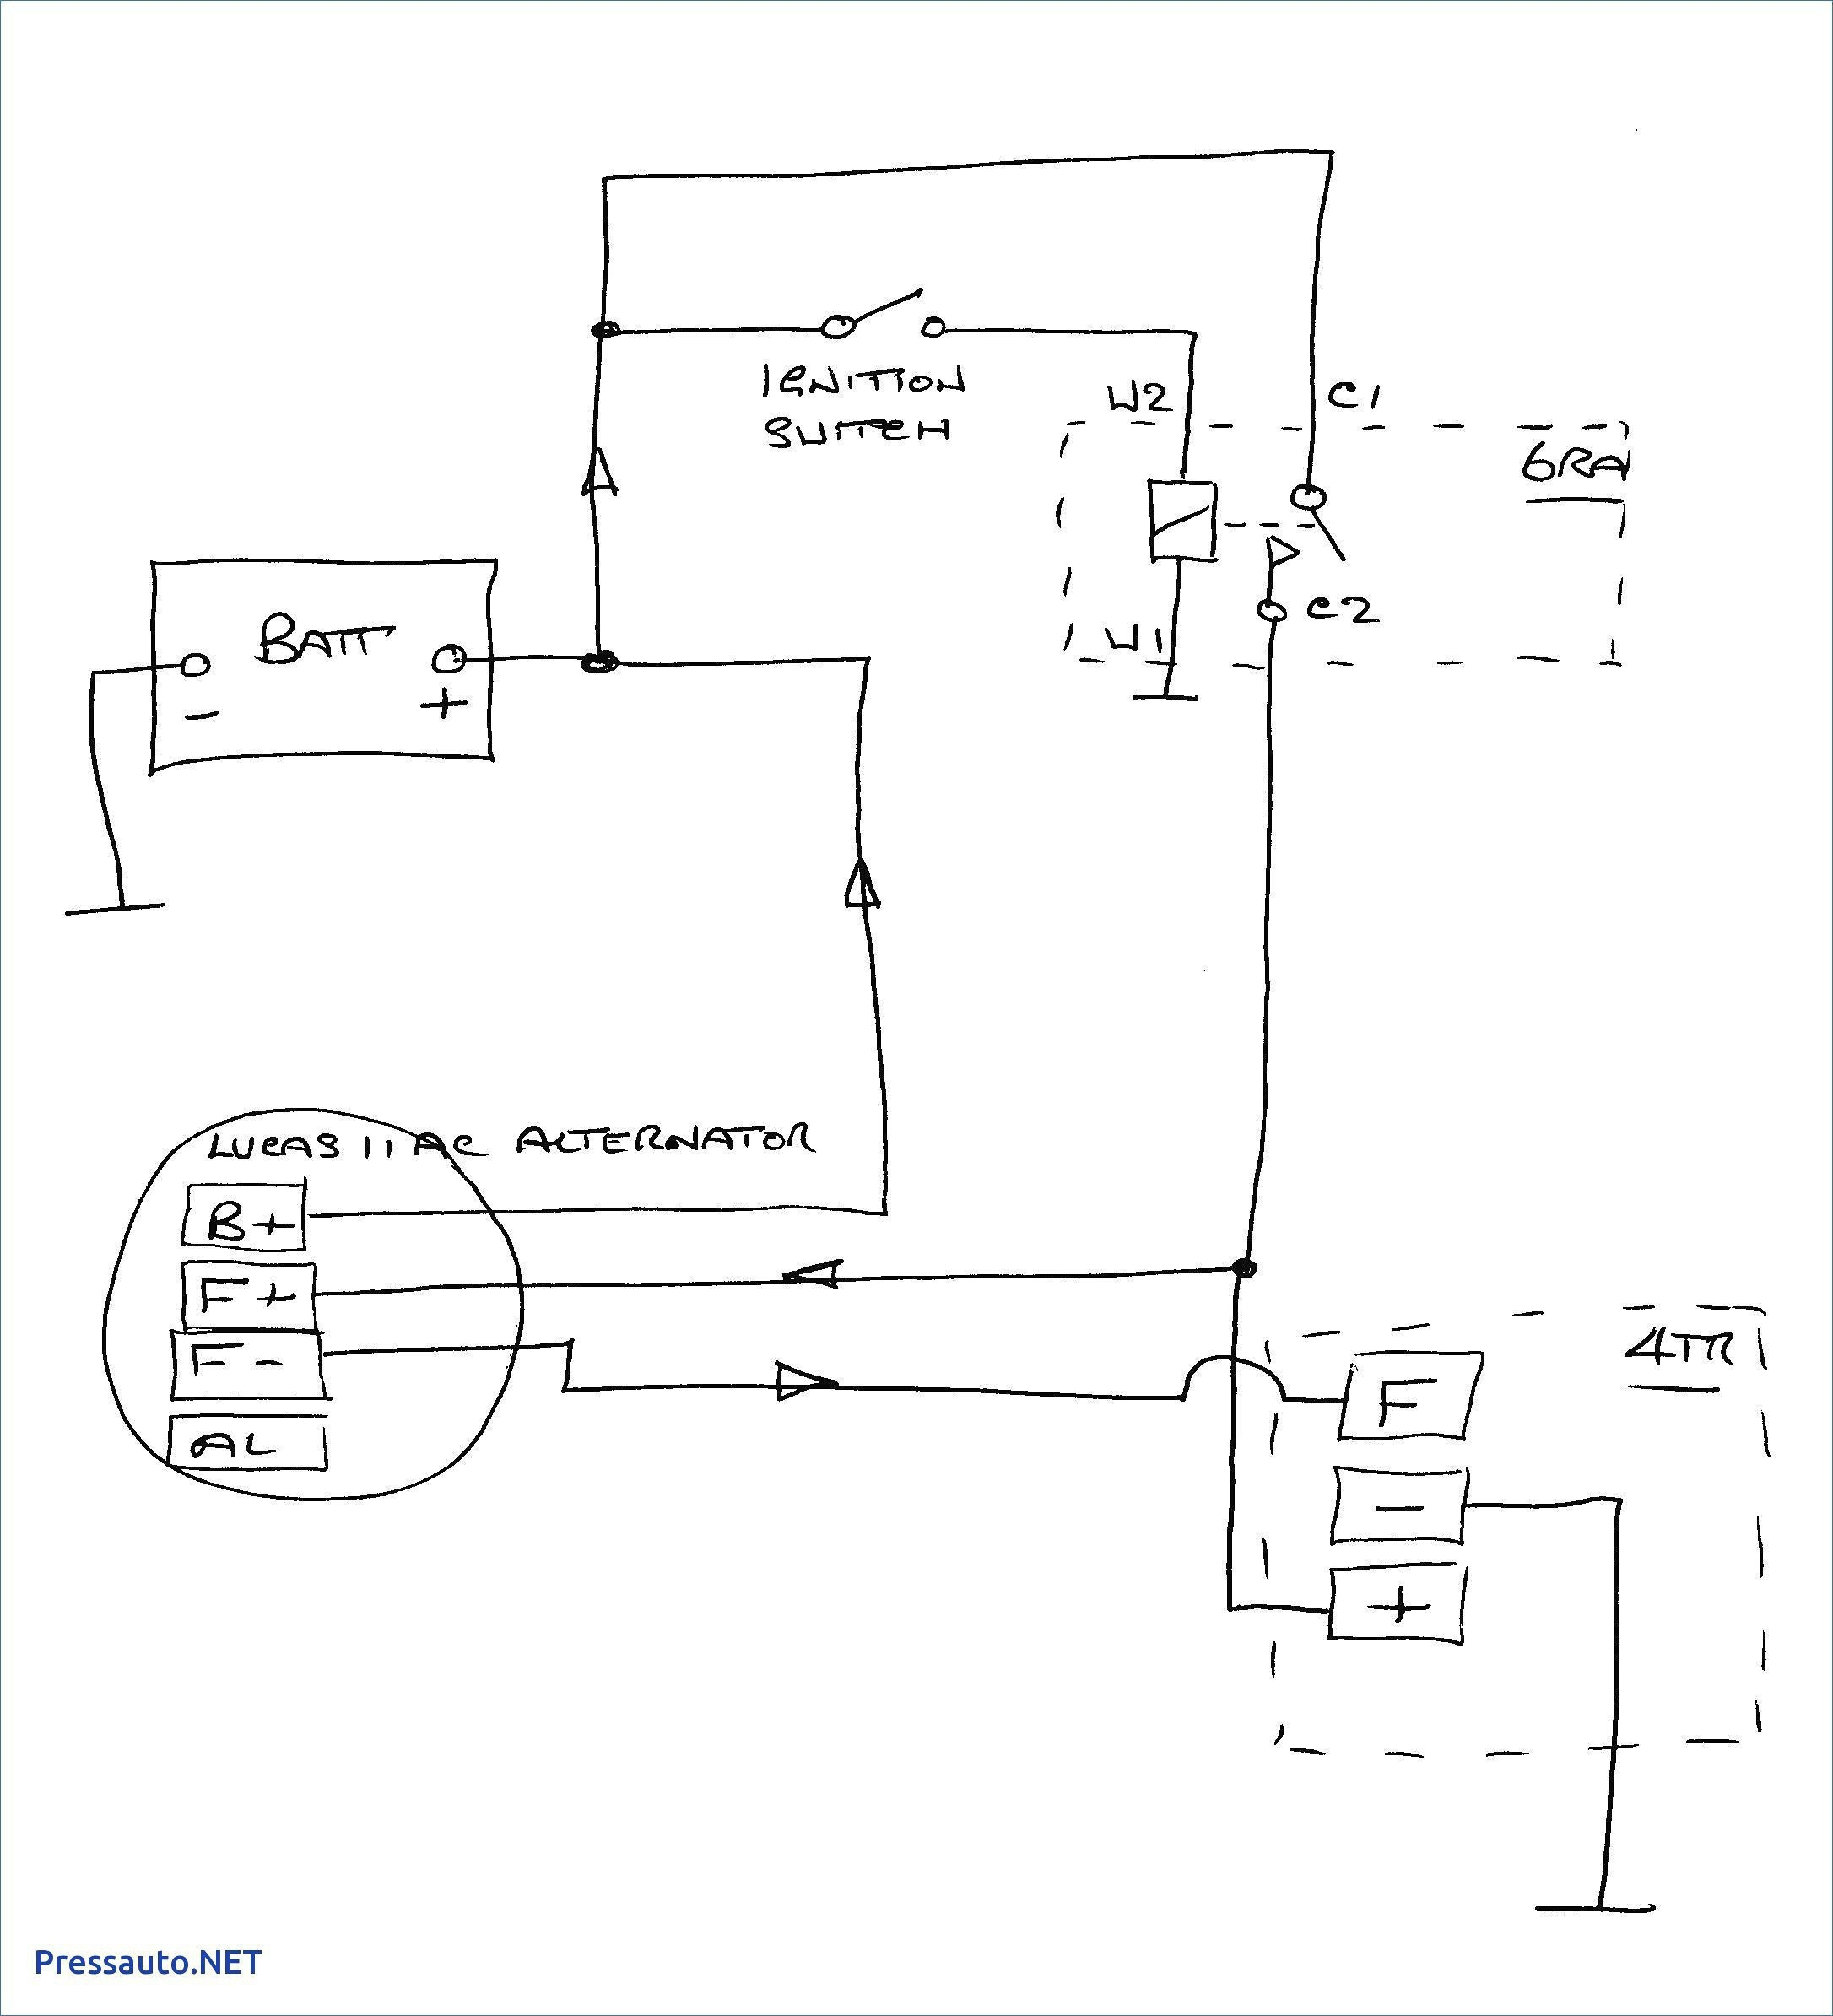 4 Wire Alternator Schematic - Do you want to download wiring ...  Wire Alternator Schematic on